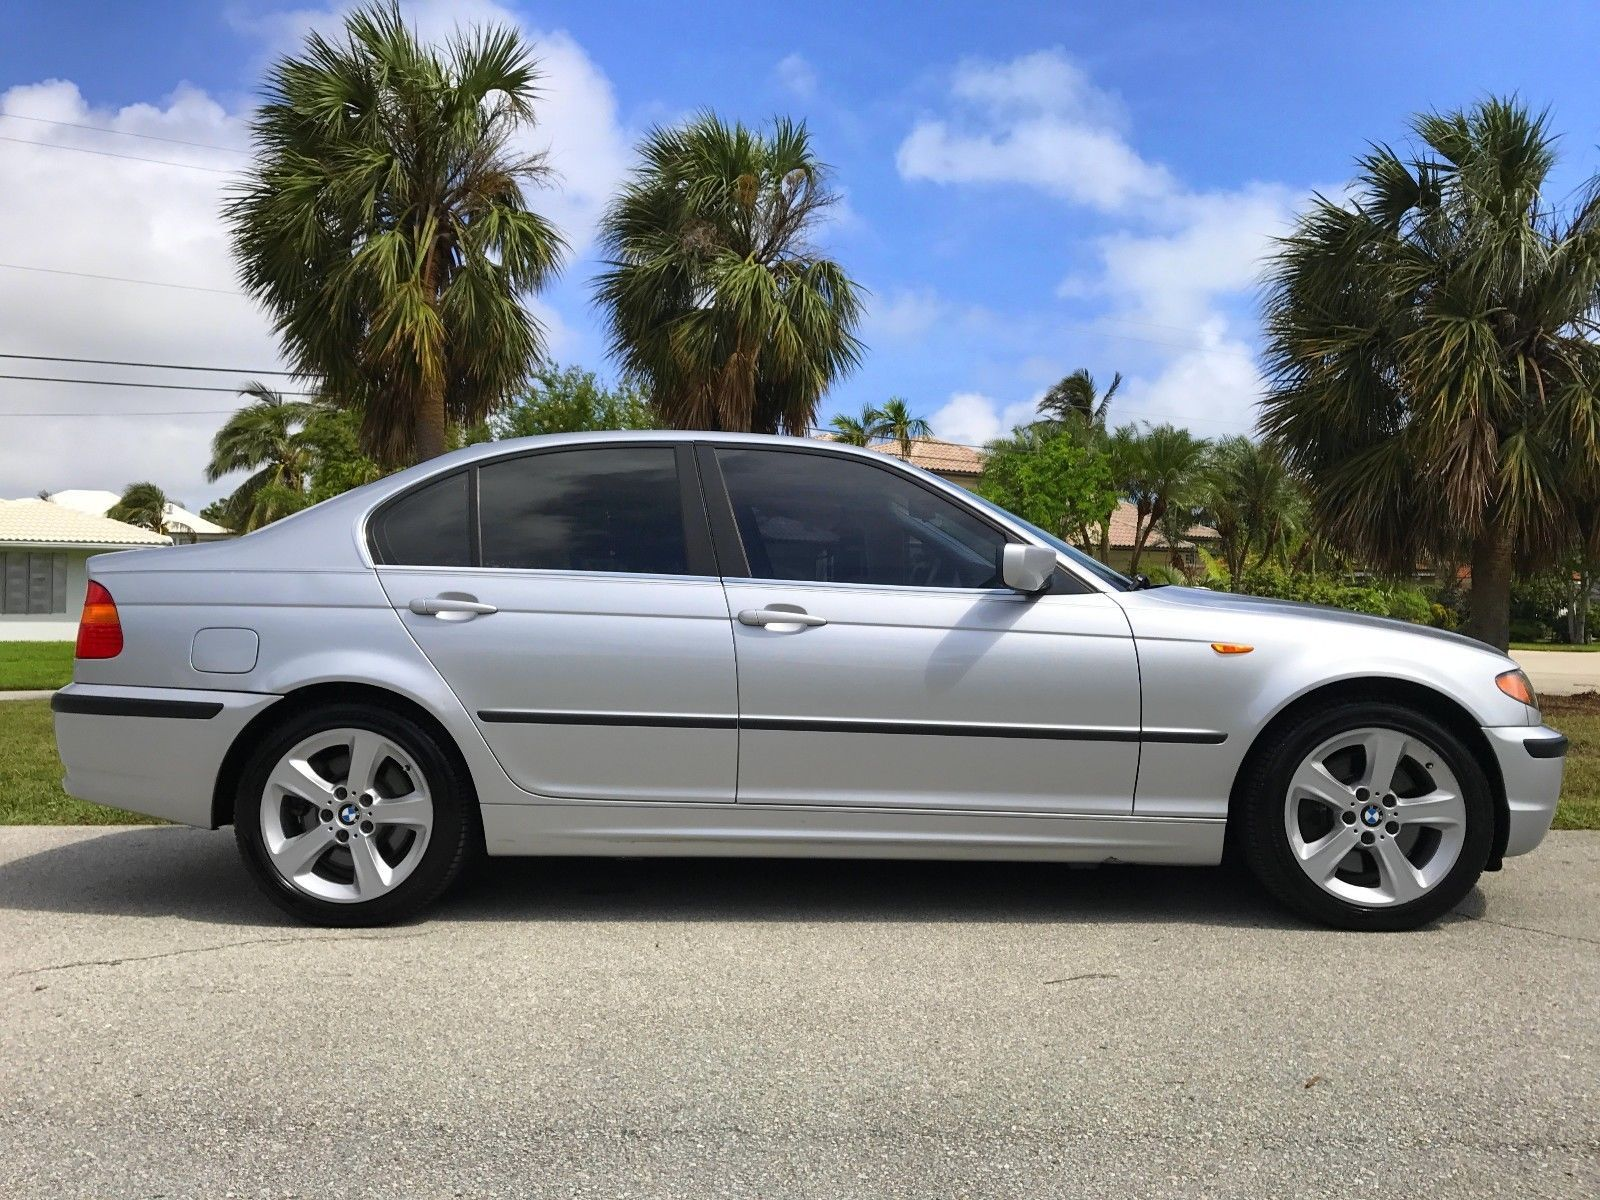 small resolution of nice awesome 2004 bmw 3 series 330xi awd florida car sunroof new tires 2004 bmw 330xi awd sunroof premium pkg not 325i 325xi 328i 328xi 330i